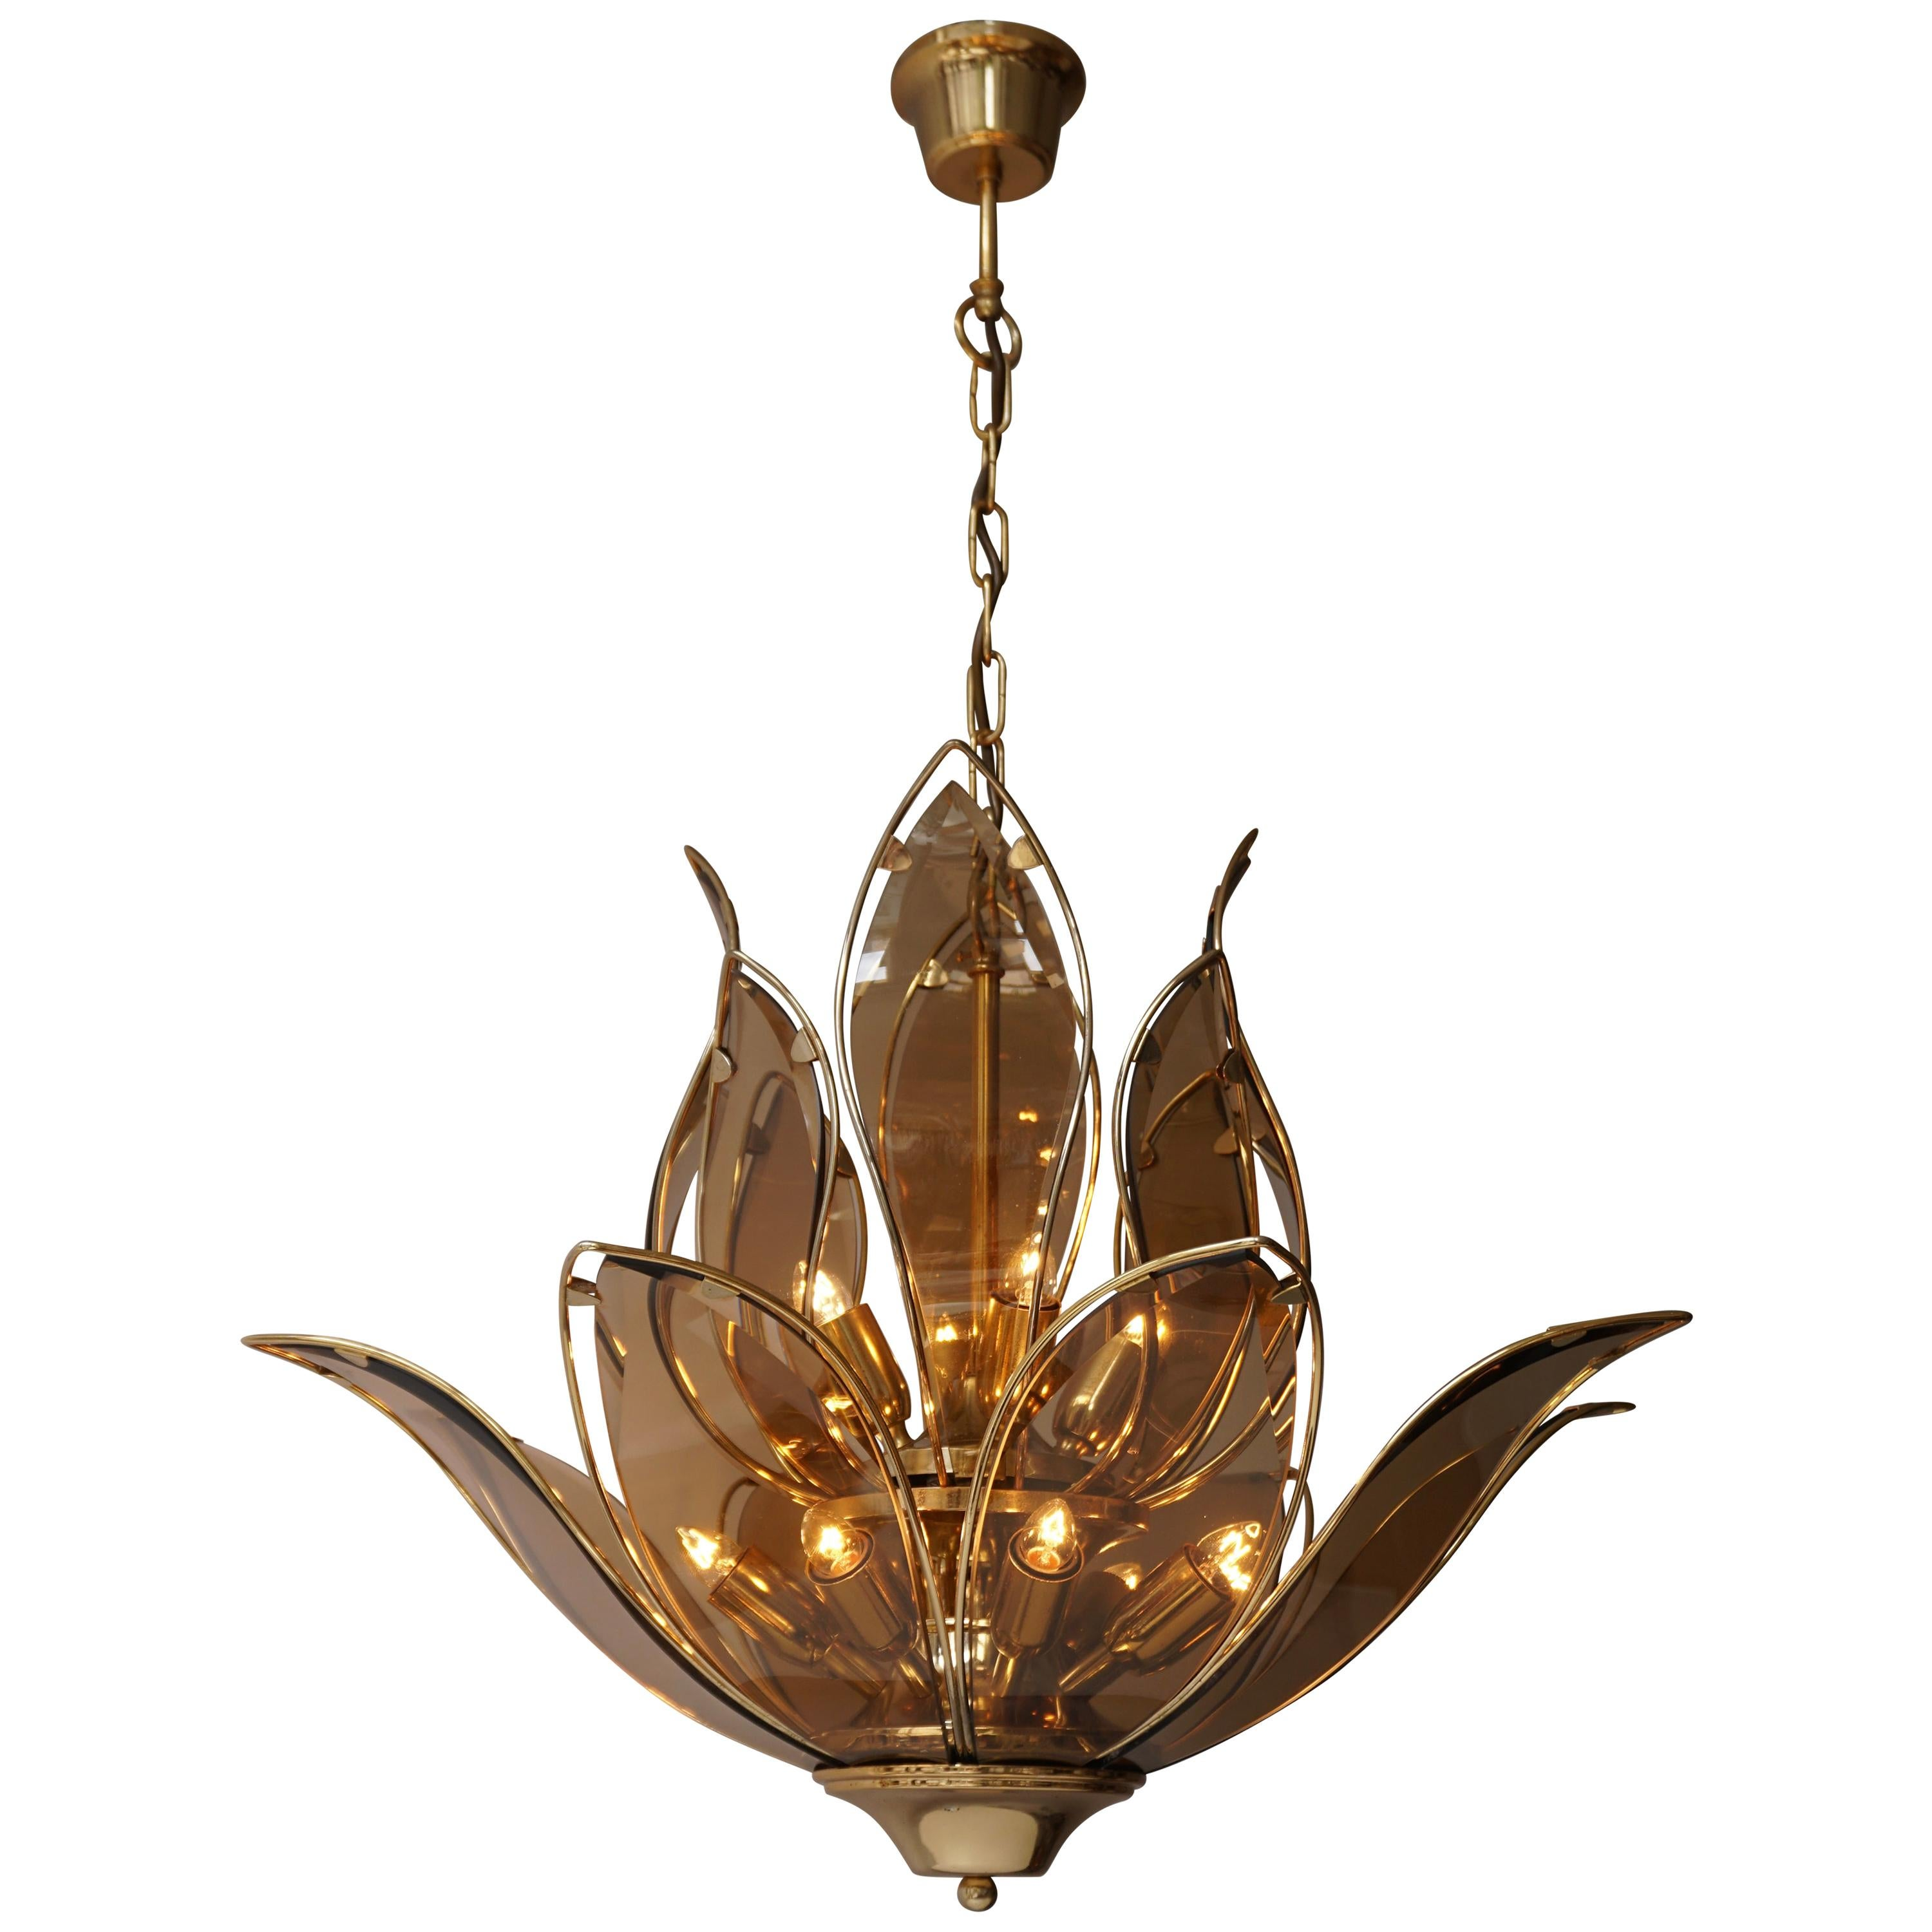 Lotus Chandelier in Brass and Glass